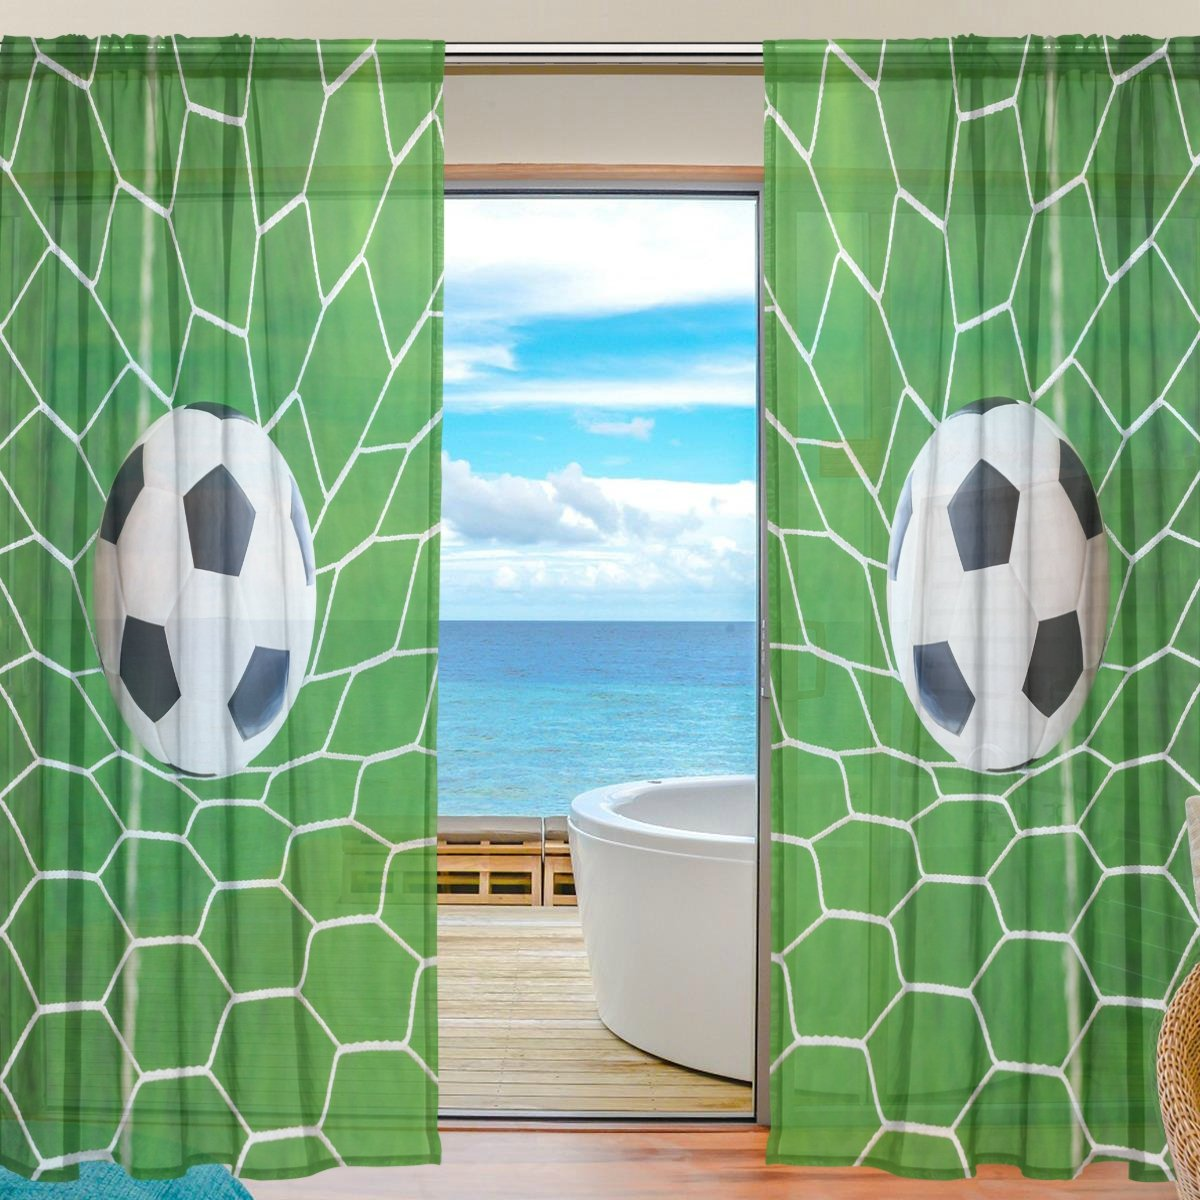 SEULIFE Window Sheer Curtain Sport Ball Soccer Voile Curtain Drapes for Door Kitchen Living Room Bedroom 55x78 inches 2 Panels g2749114p112c126s167